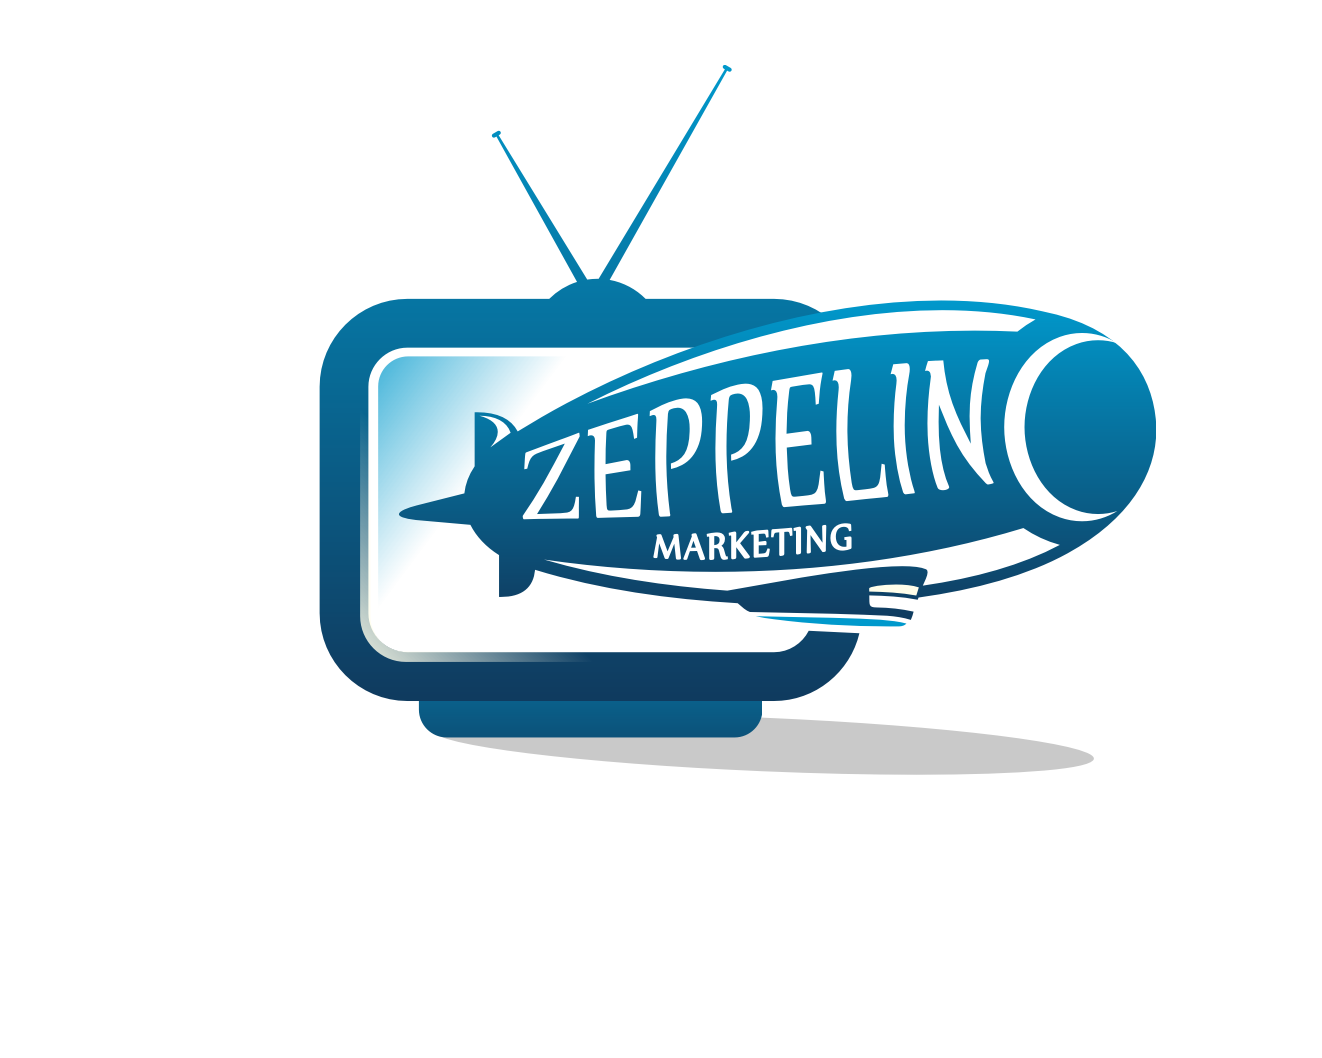 Zeppelin Marketing